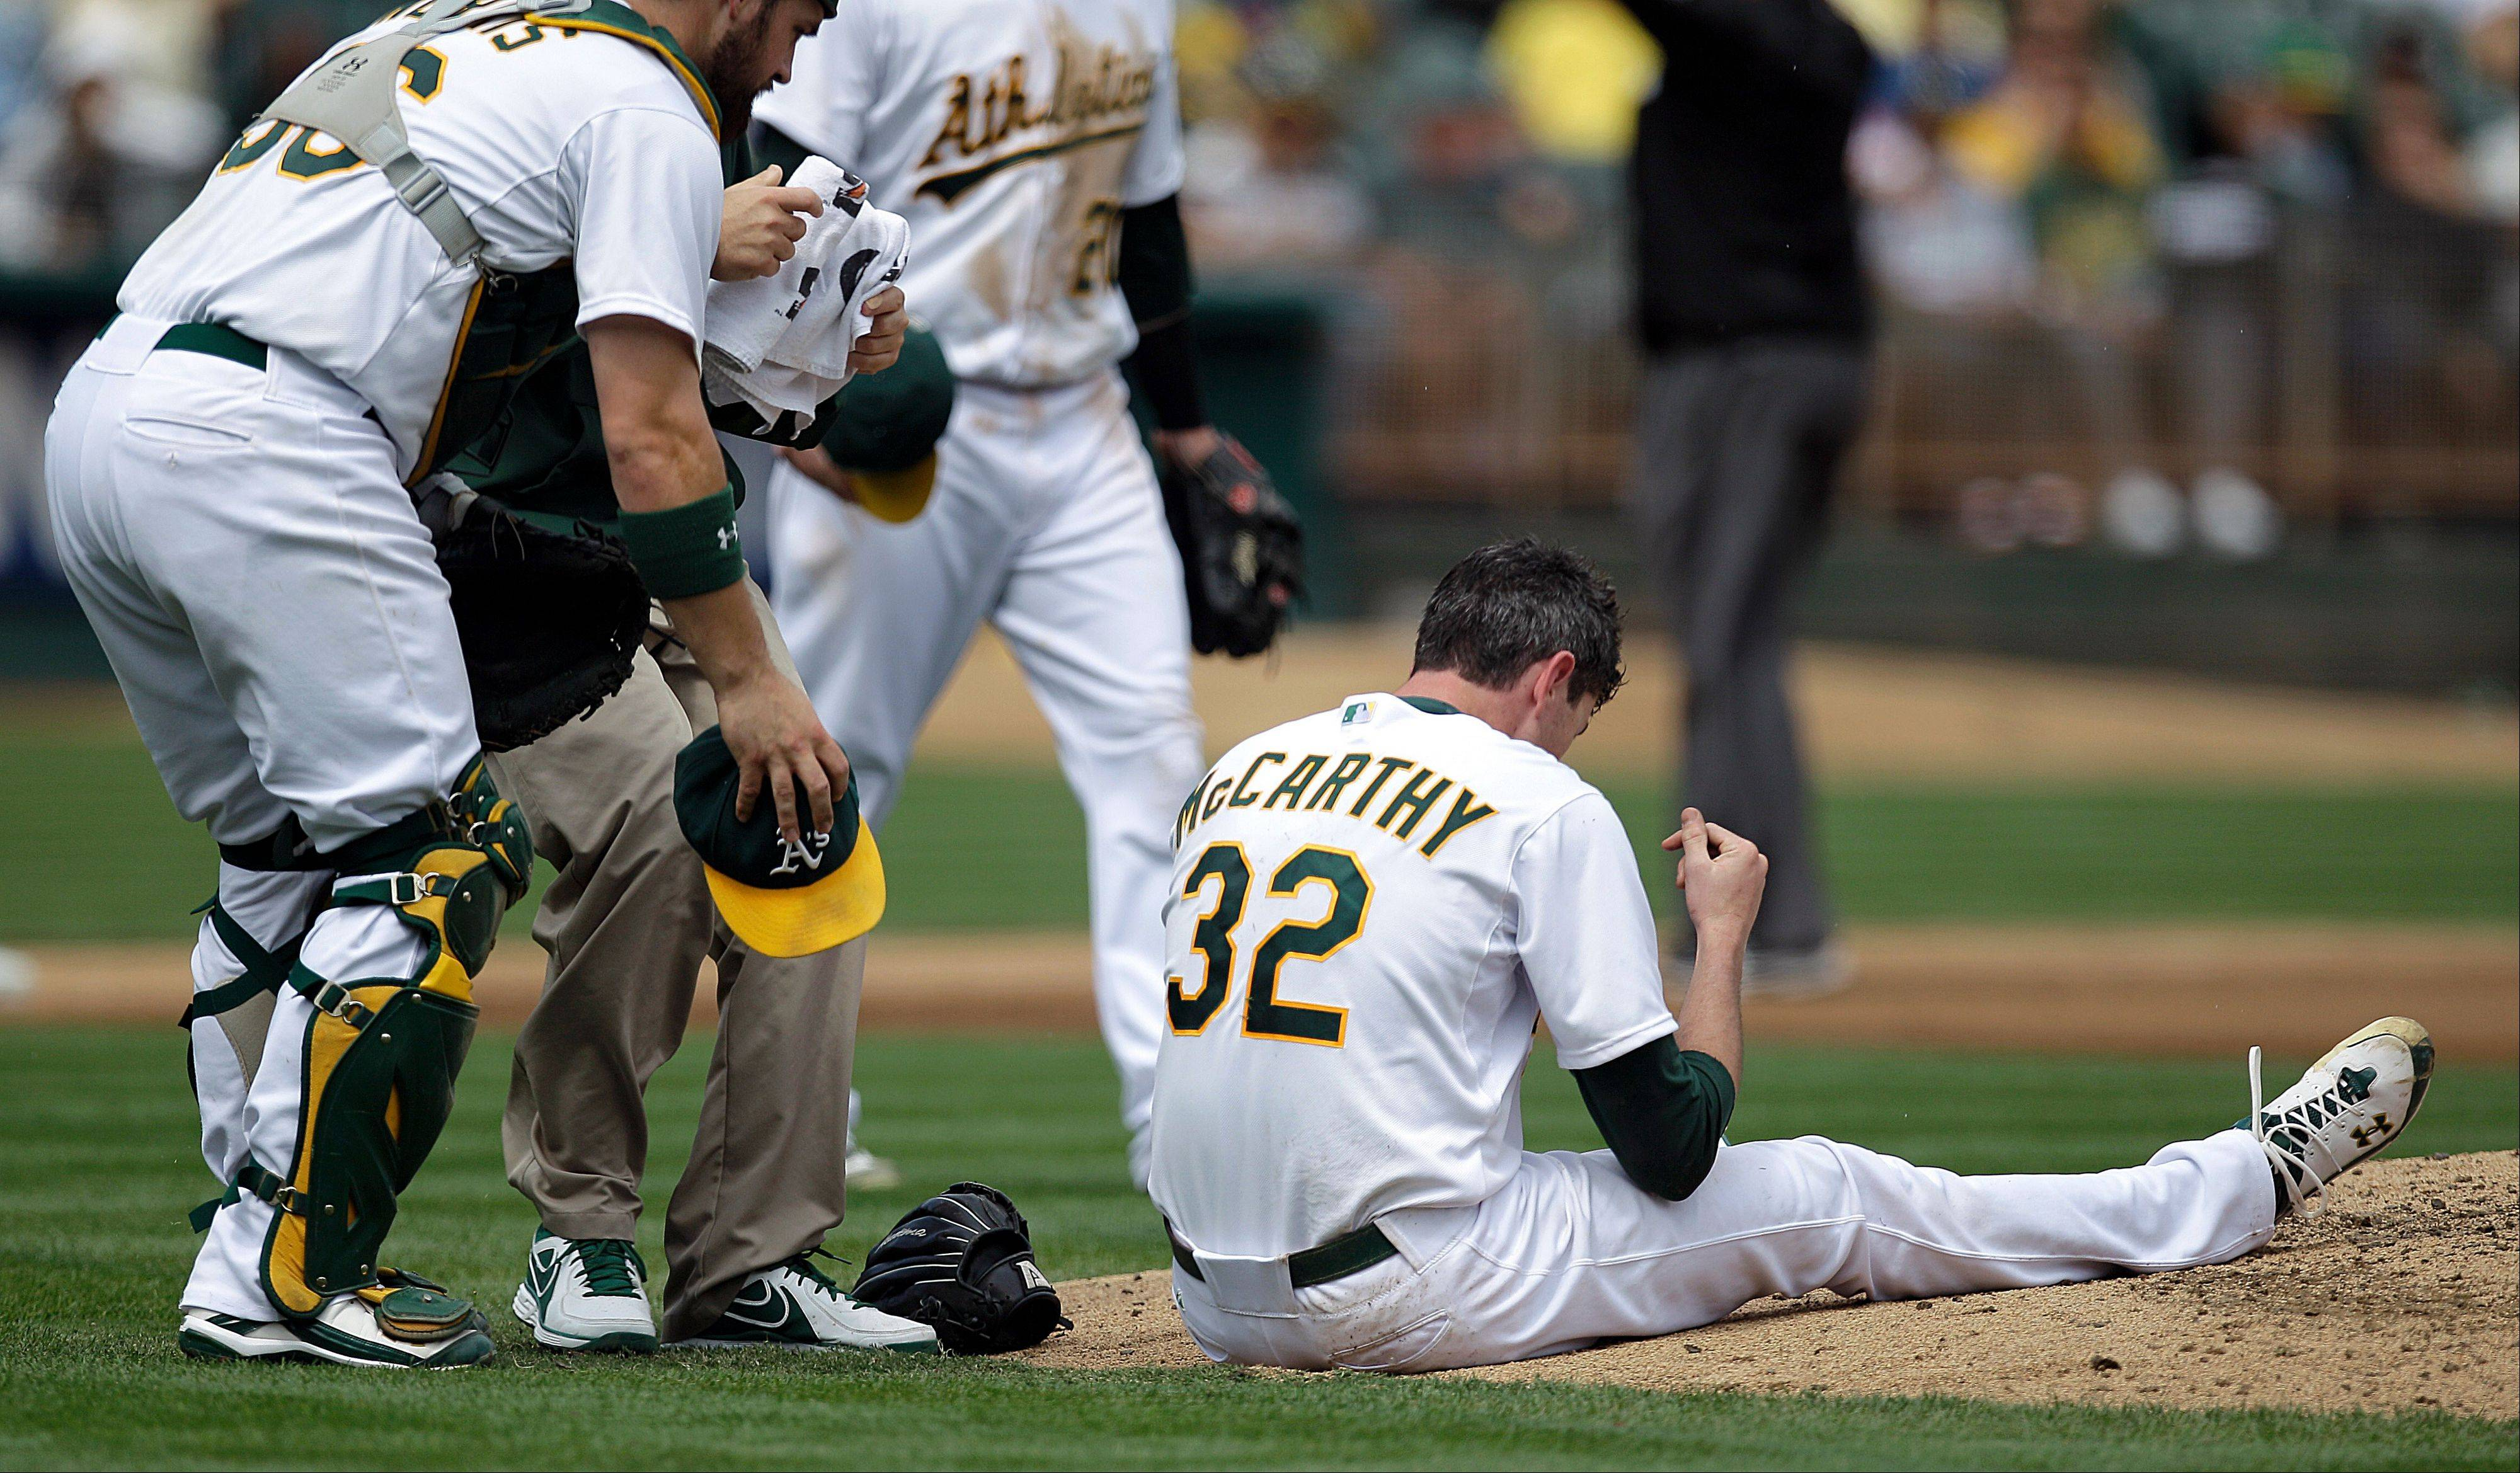 Oakland Athletics catcher Derek Norris, left, comes to the aid of pitcher Brandon McCarthy (32) who was hit in the head by a ball hit by Los Angeles Angels� Erick Aybar in the fourth inning of a baseball game on Wednesday in Oakland, Calif. McCarthy left the game after the incident.